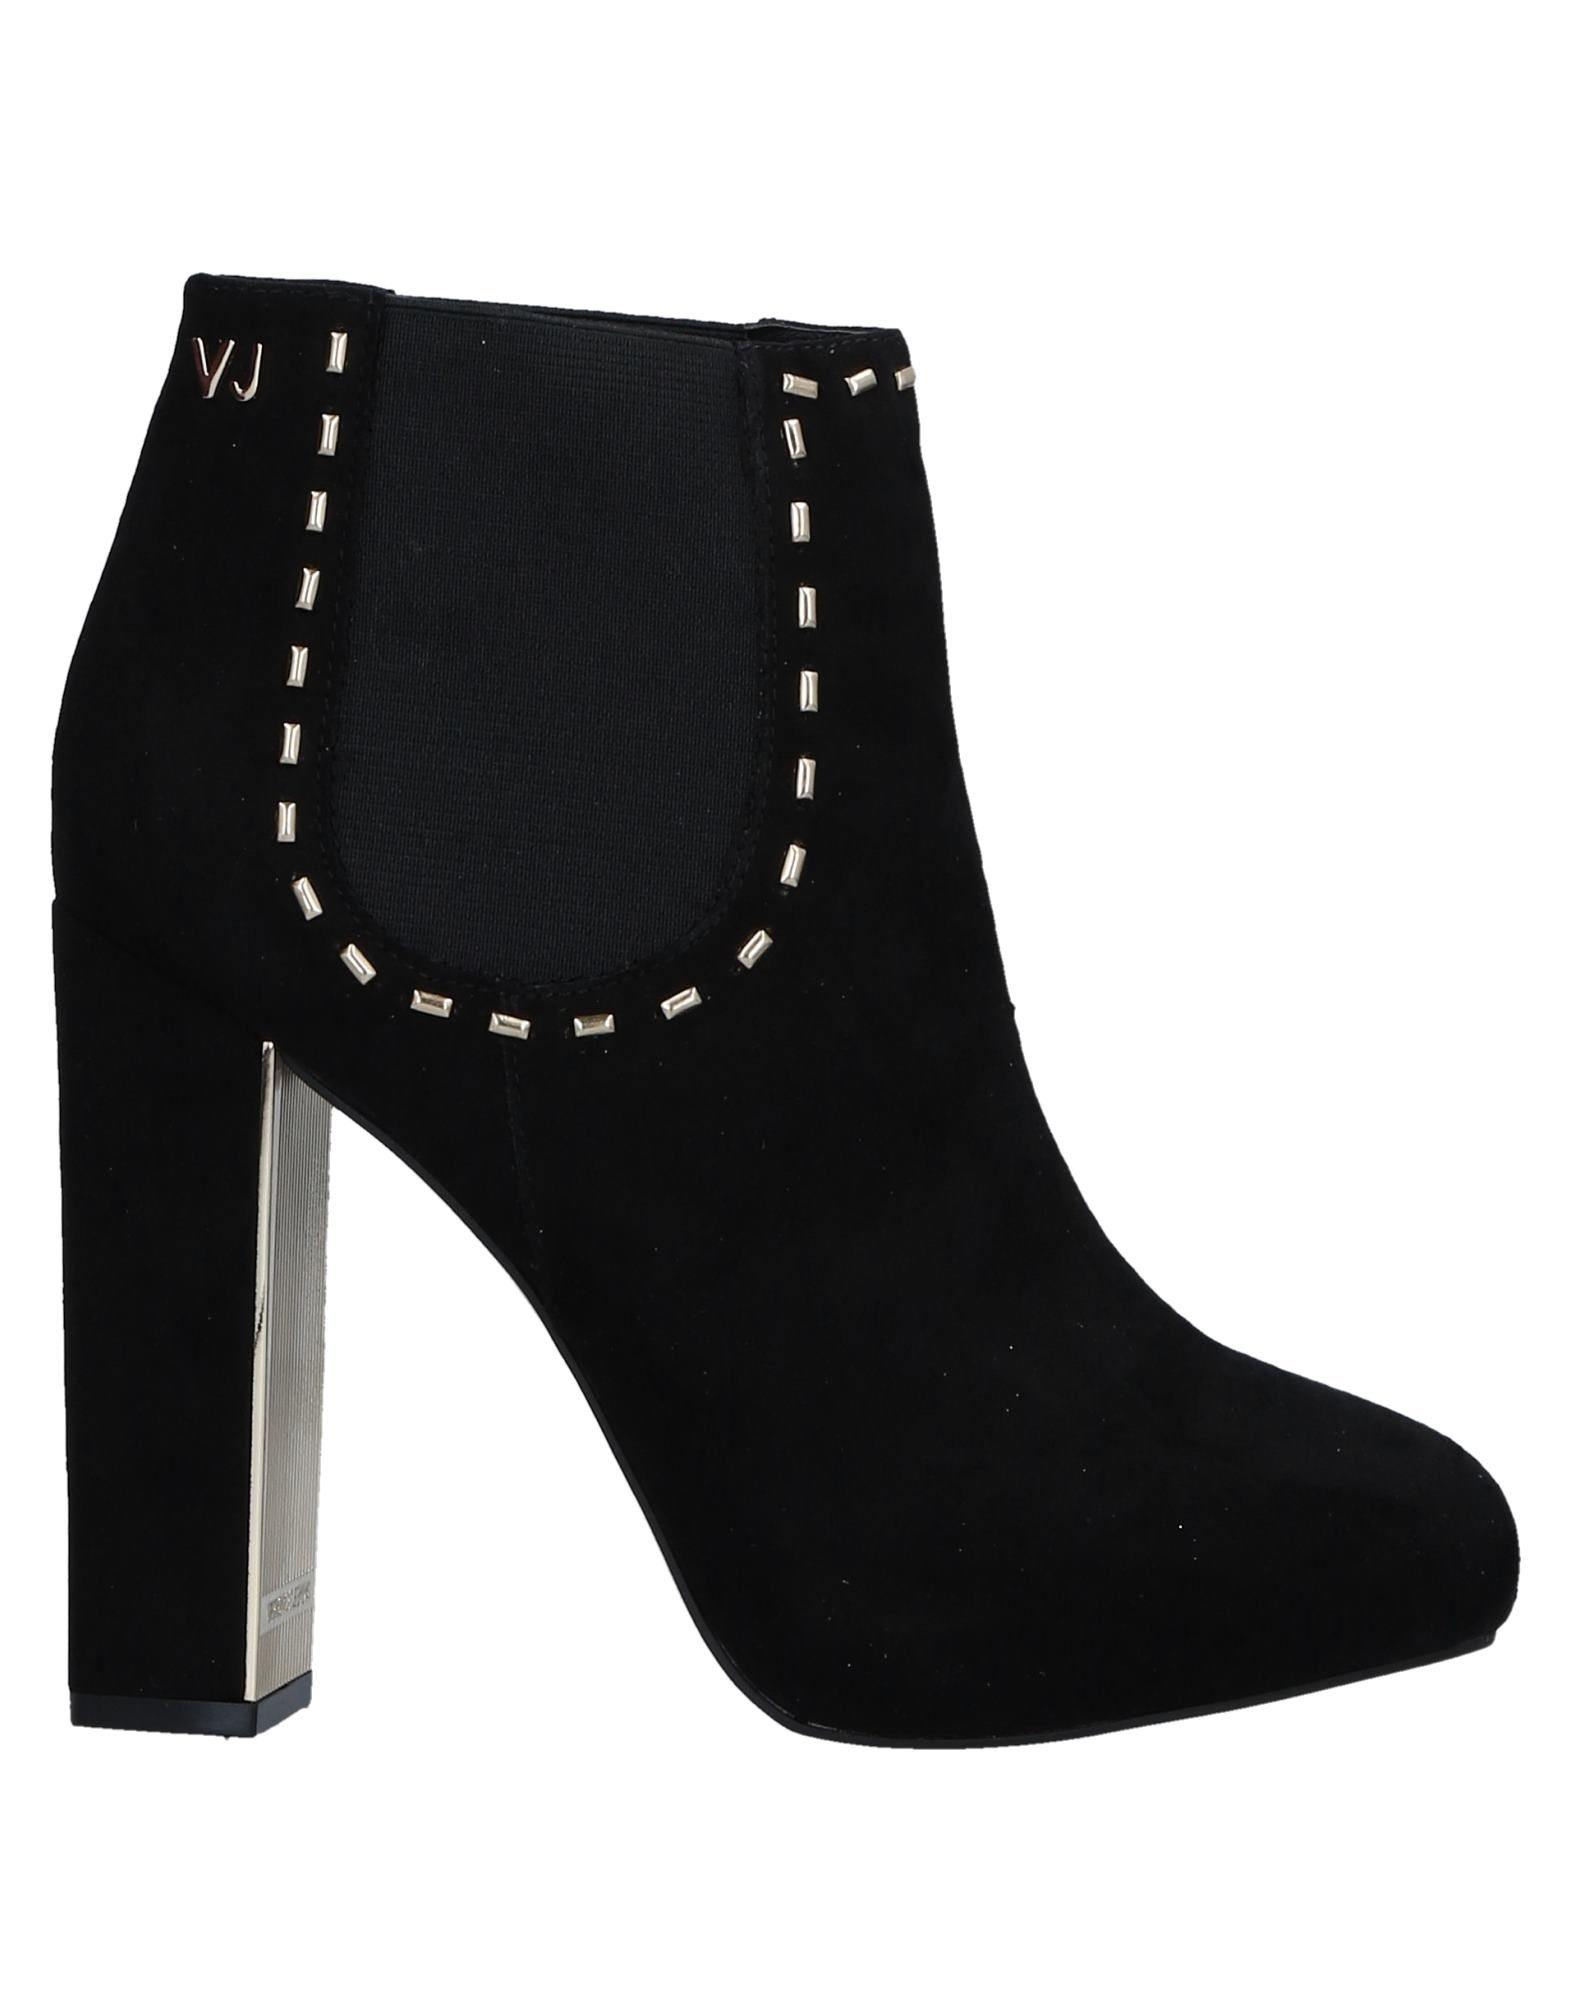 Versace Jeans Ankle Boot Ankle - Women Versace Jeans Ankle Boot Boots online on  Australia - 11522677PR 1bd325